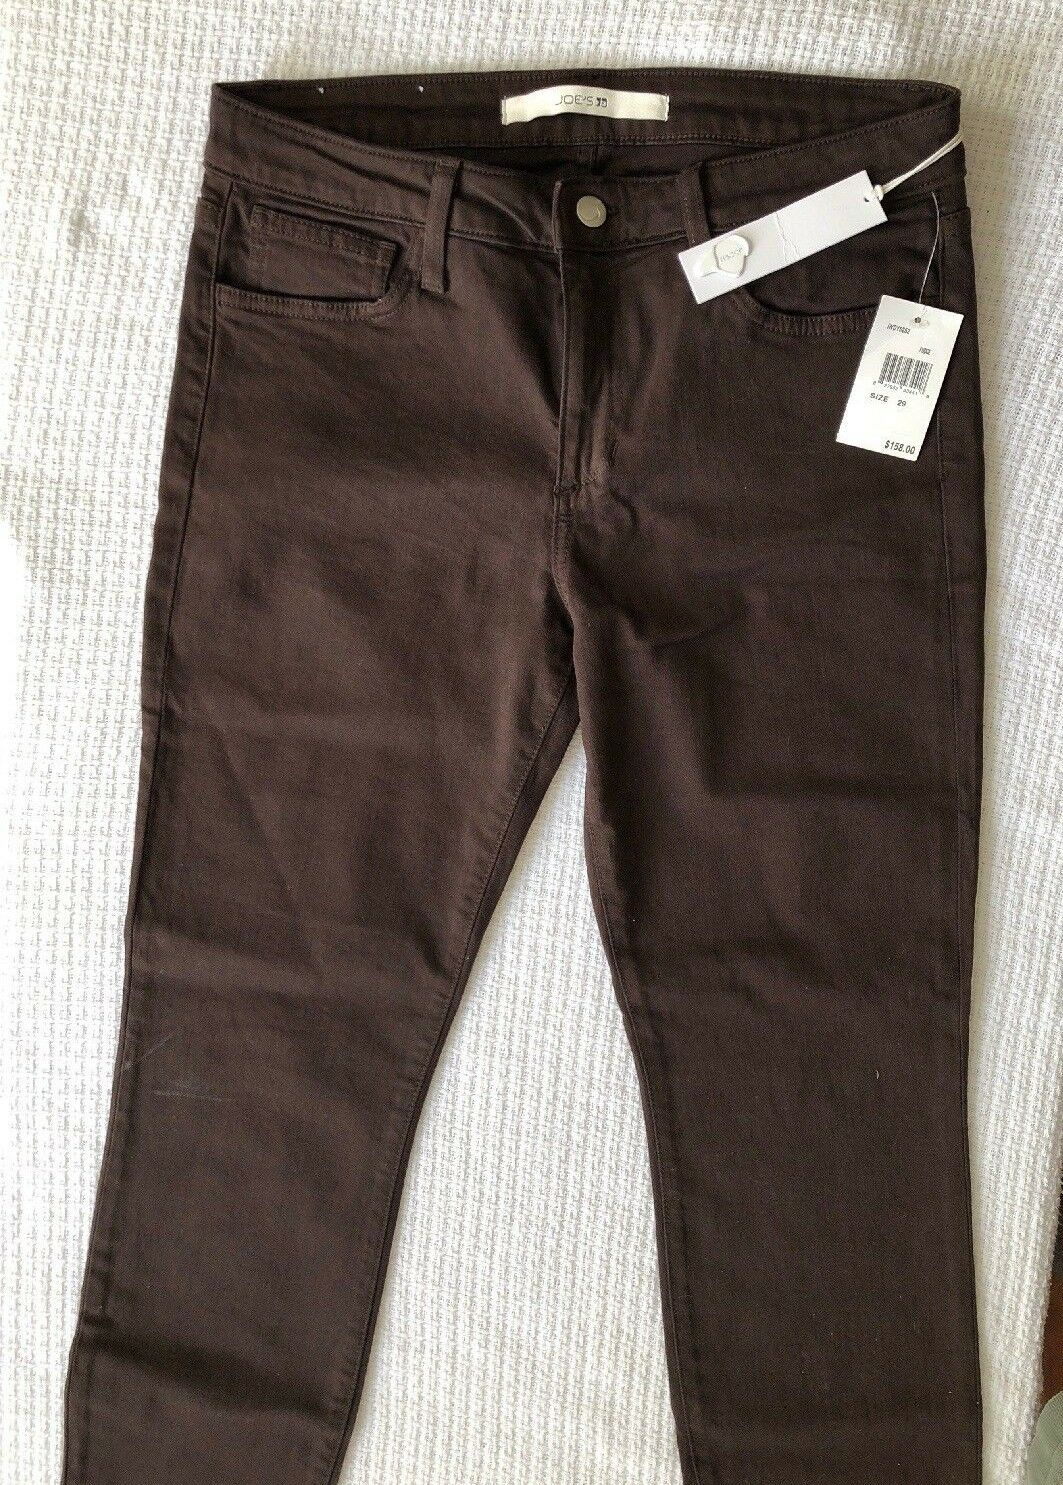 NWT JOE'S Size 29 x 31 Skinny MIDRISE SKINNY STRETCH Fudge Brown JEANS